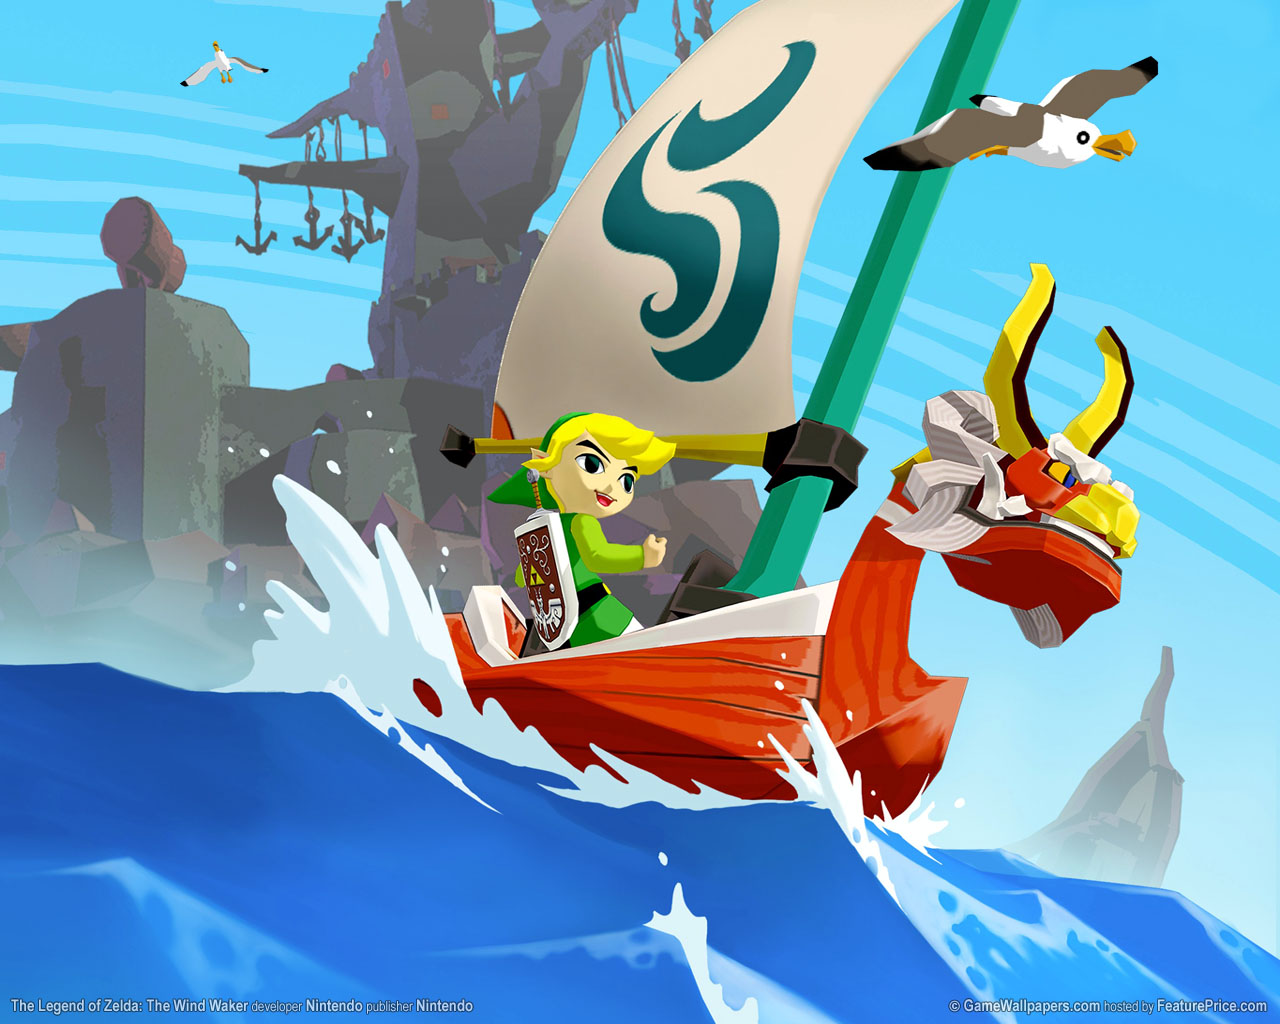 Wind Waker HD: New Difficulty Mode, $50 Price Tag, and Wii U Bundle